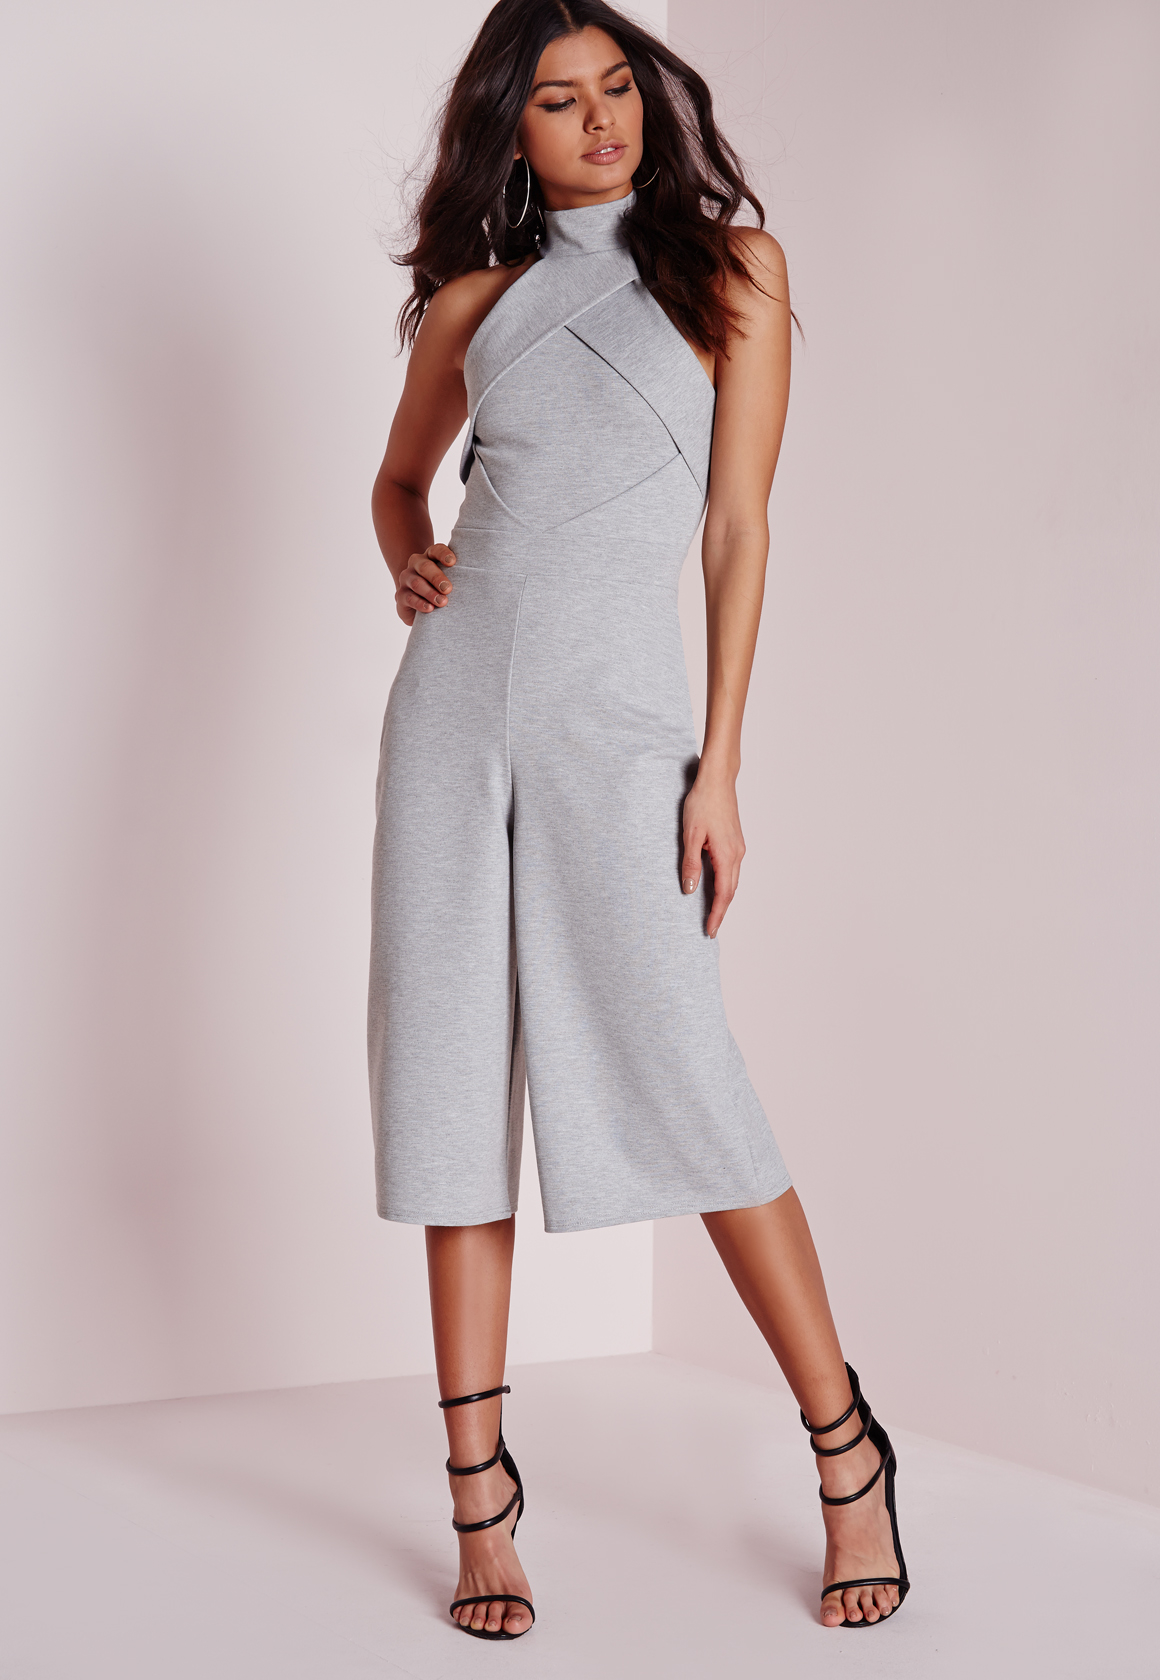 4ae6e34c697 Lyst - Missguided Origami Culotte Jumpsuit Grey in Gray